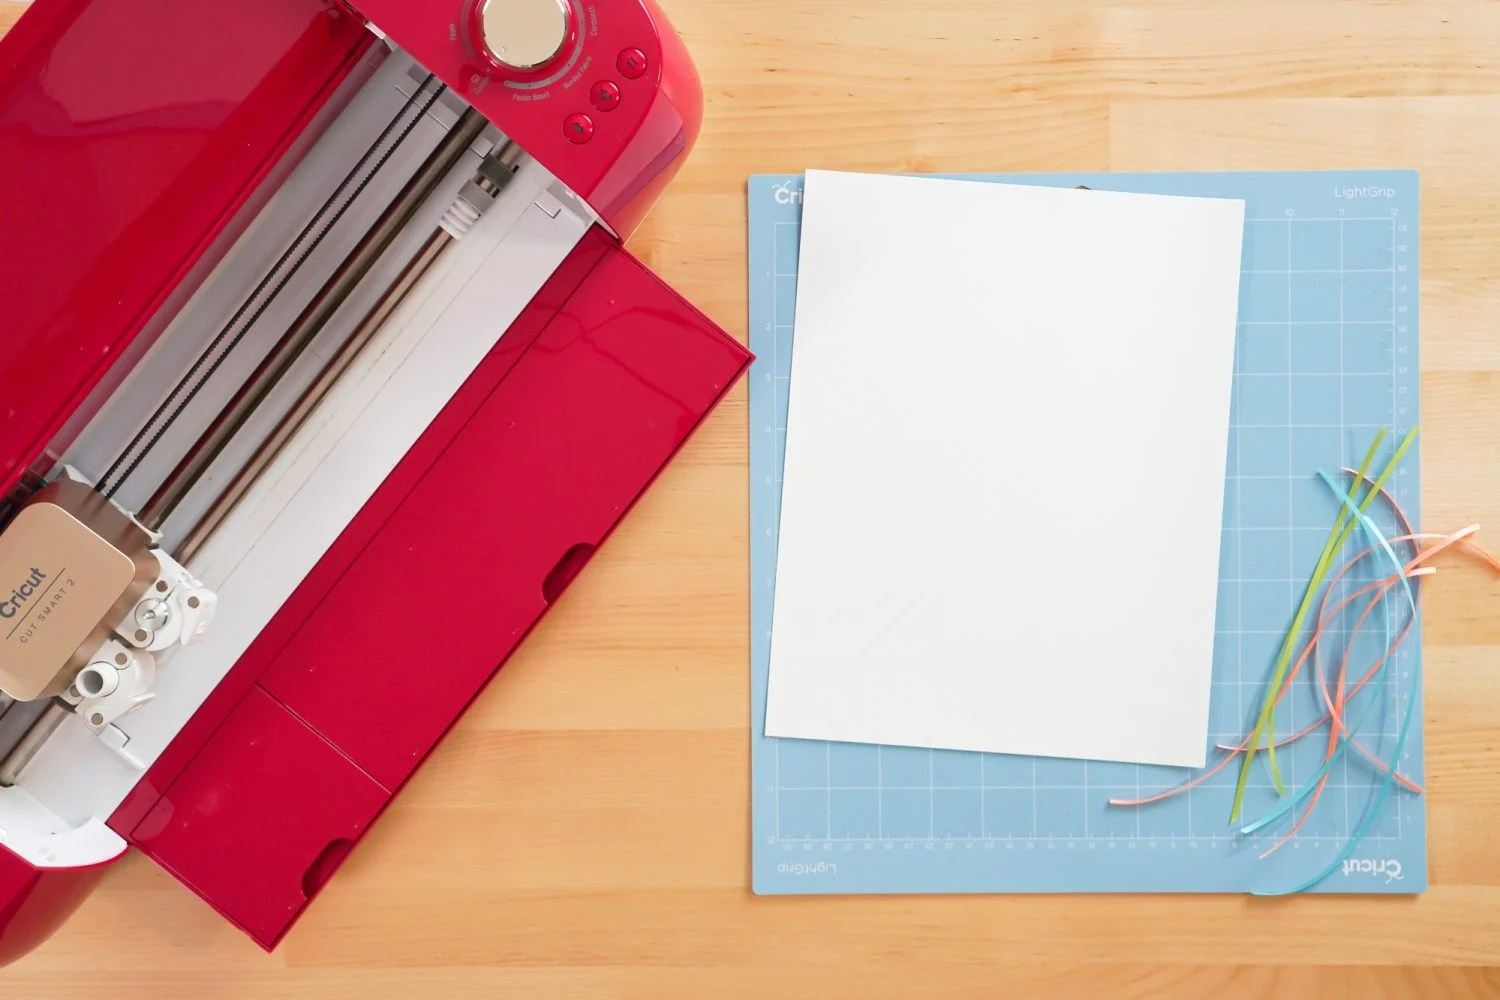 Supplies needed for this project: Cricut, Cricut mat, white cardstock, ribbon